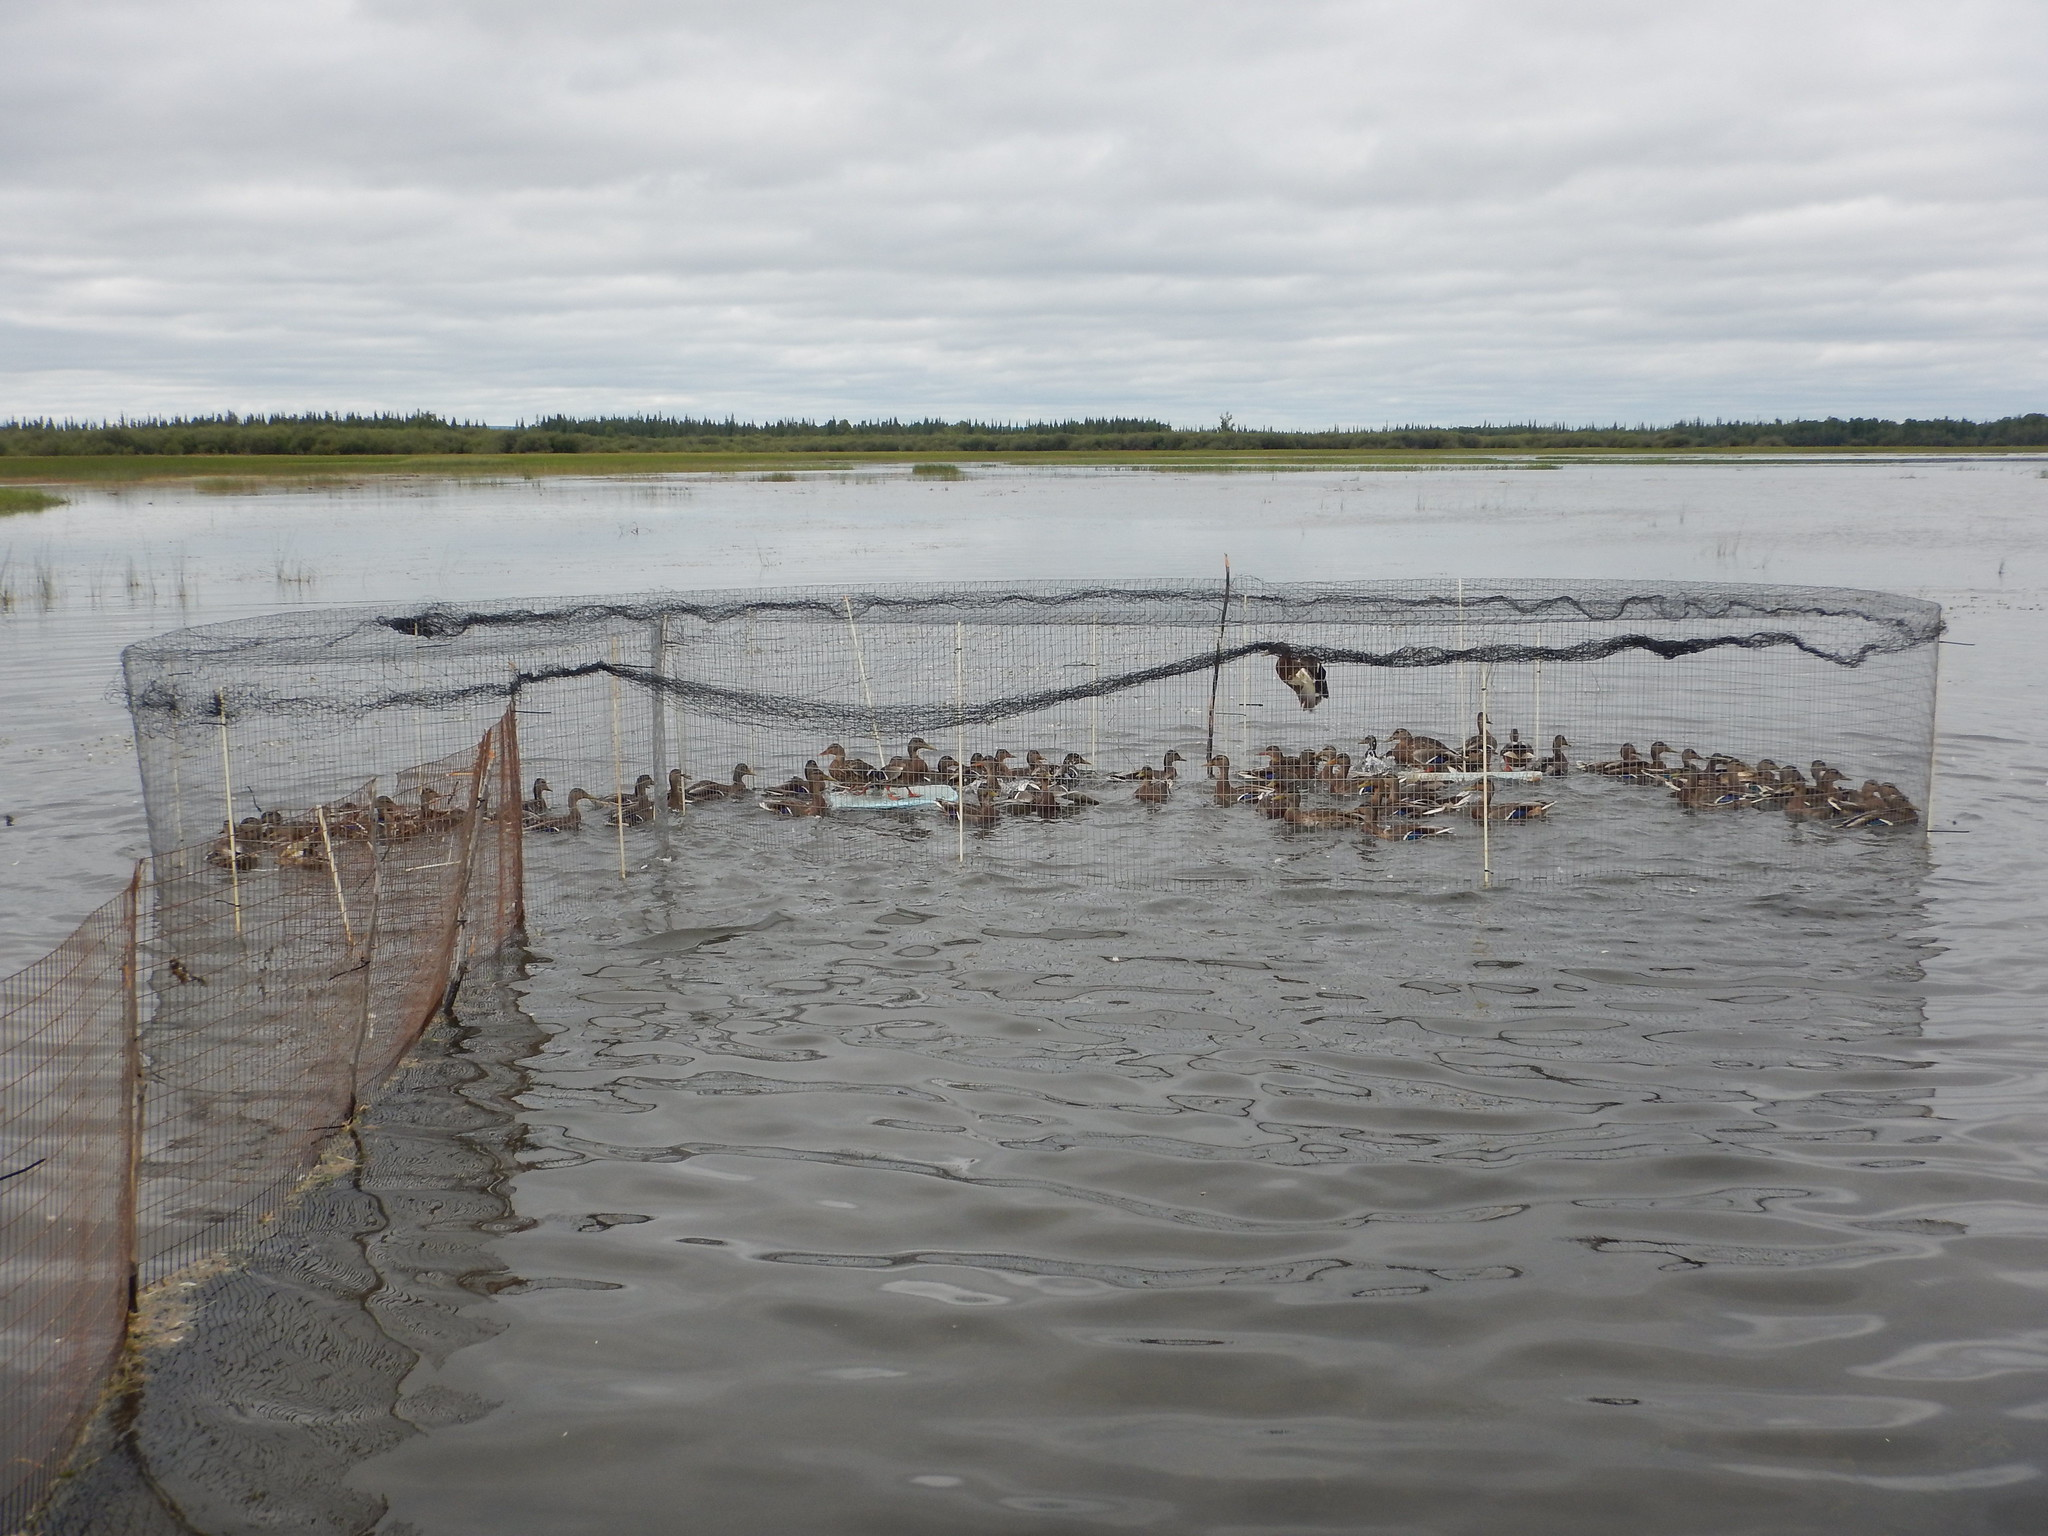 A typical catch in the new, larger traps. Most traps caught Mallards exclusively. Photo Credit: Steve Olson, USFWS